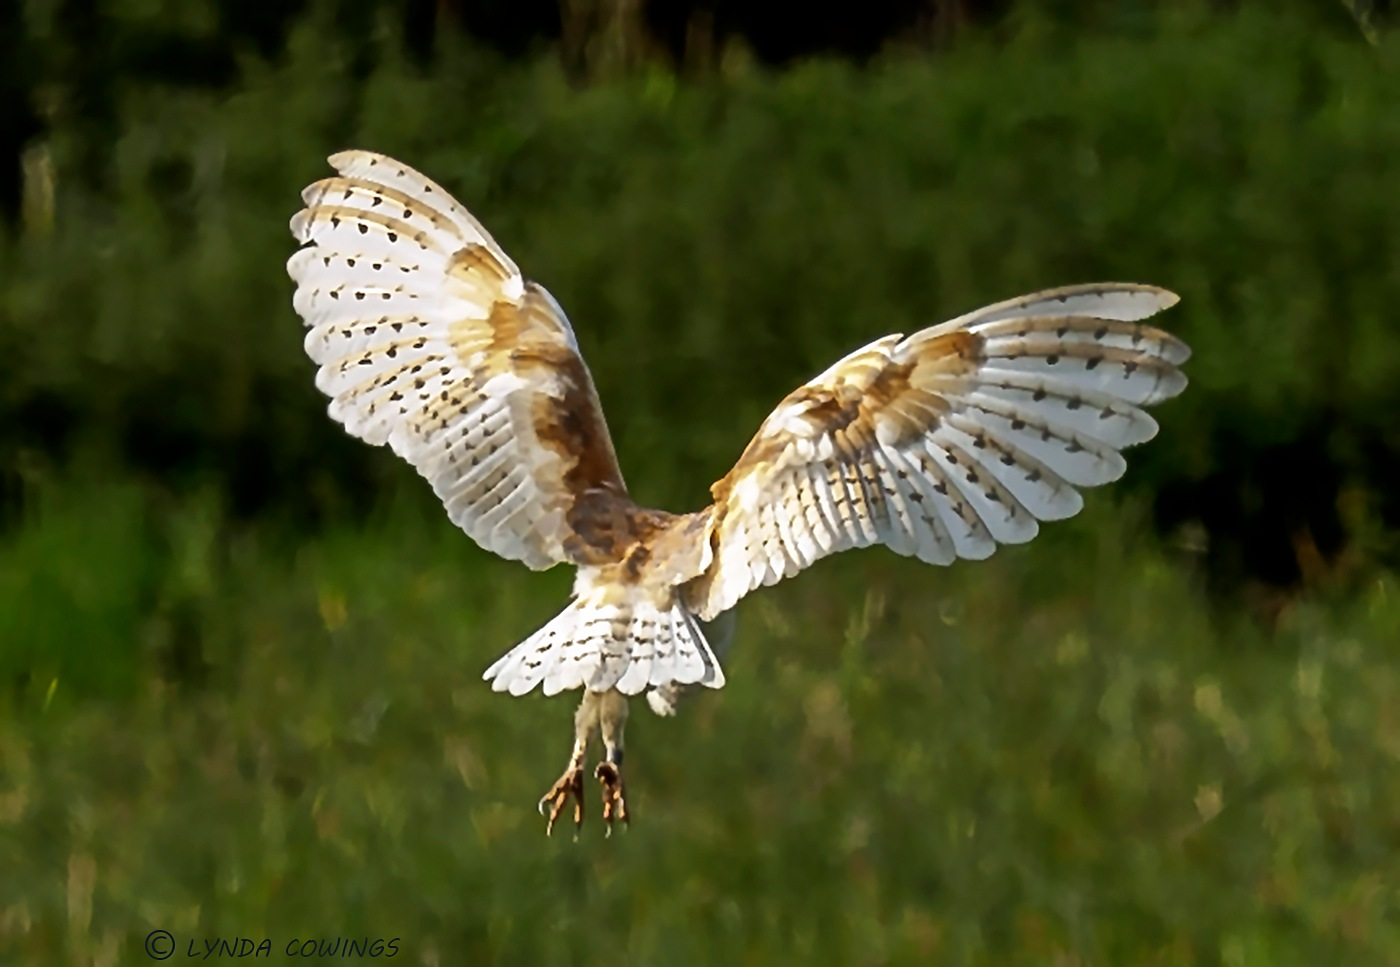 Back view of a Barn Owl by LyndaCowings